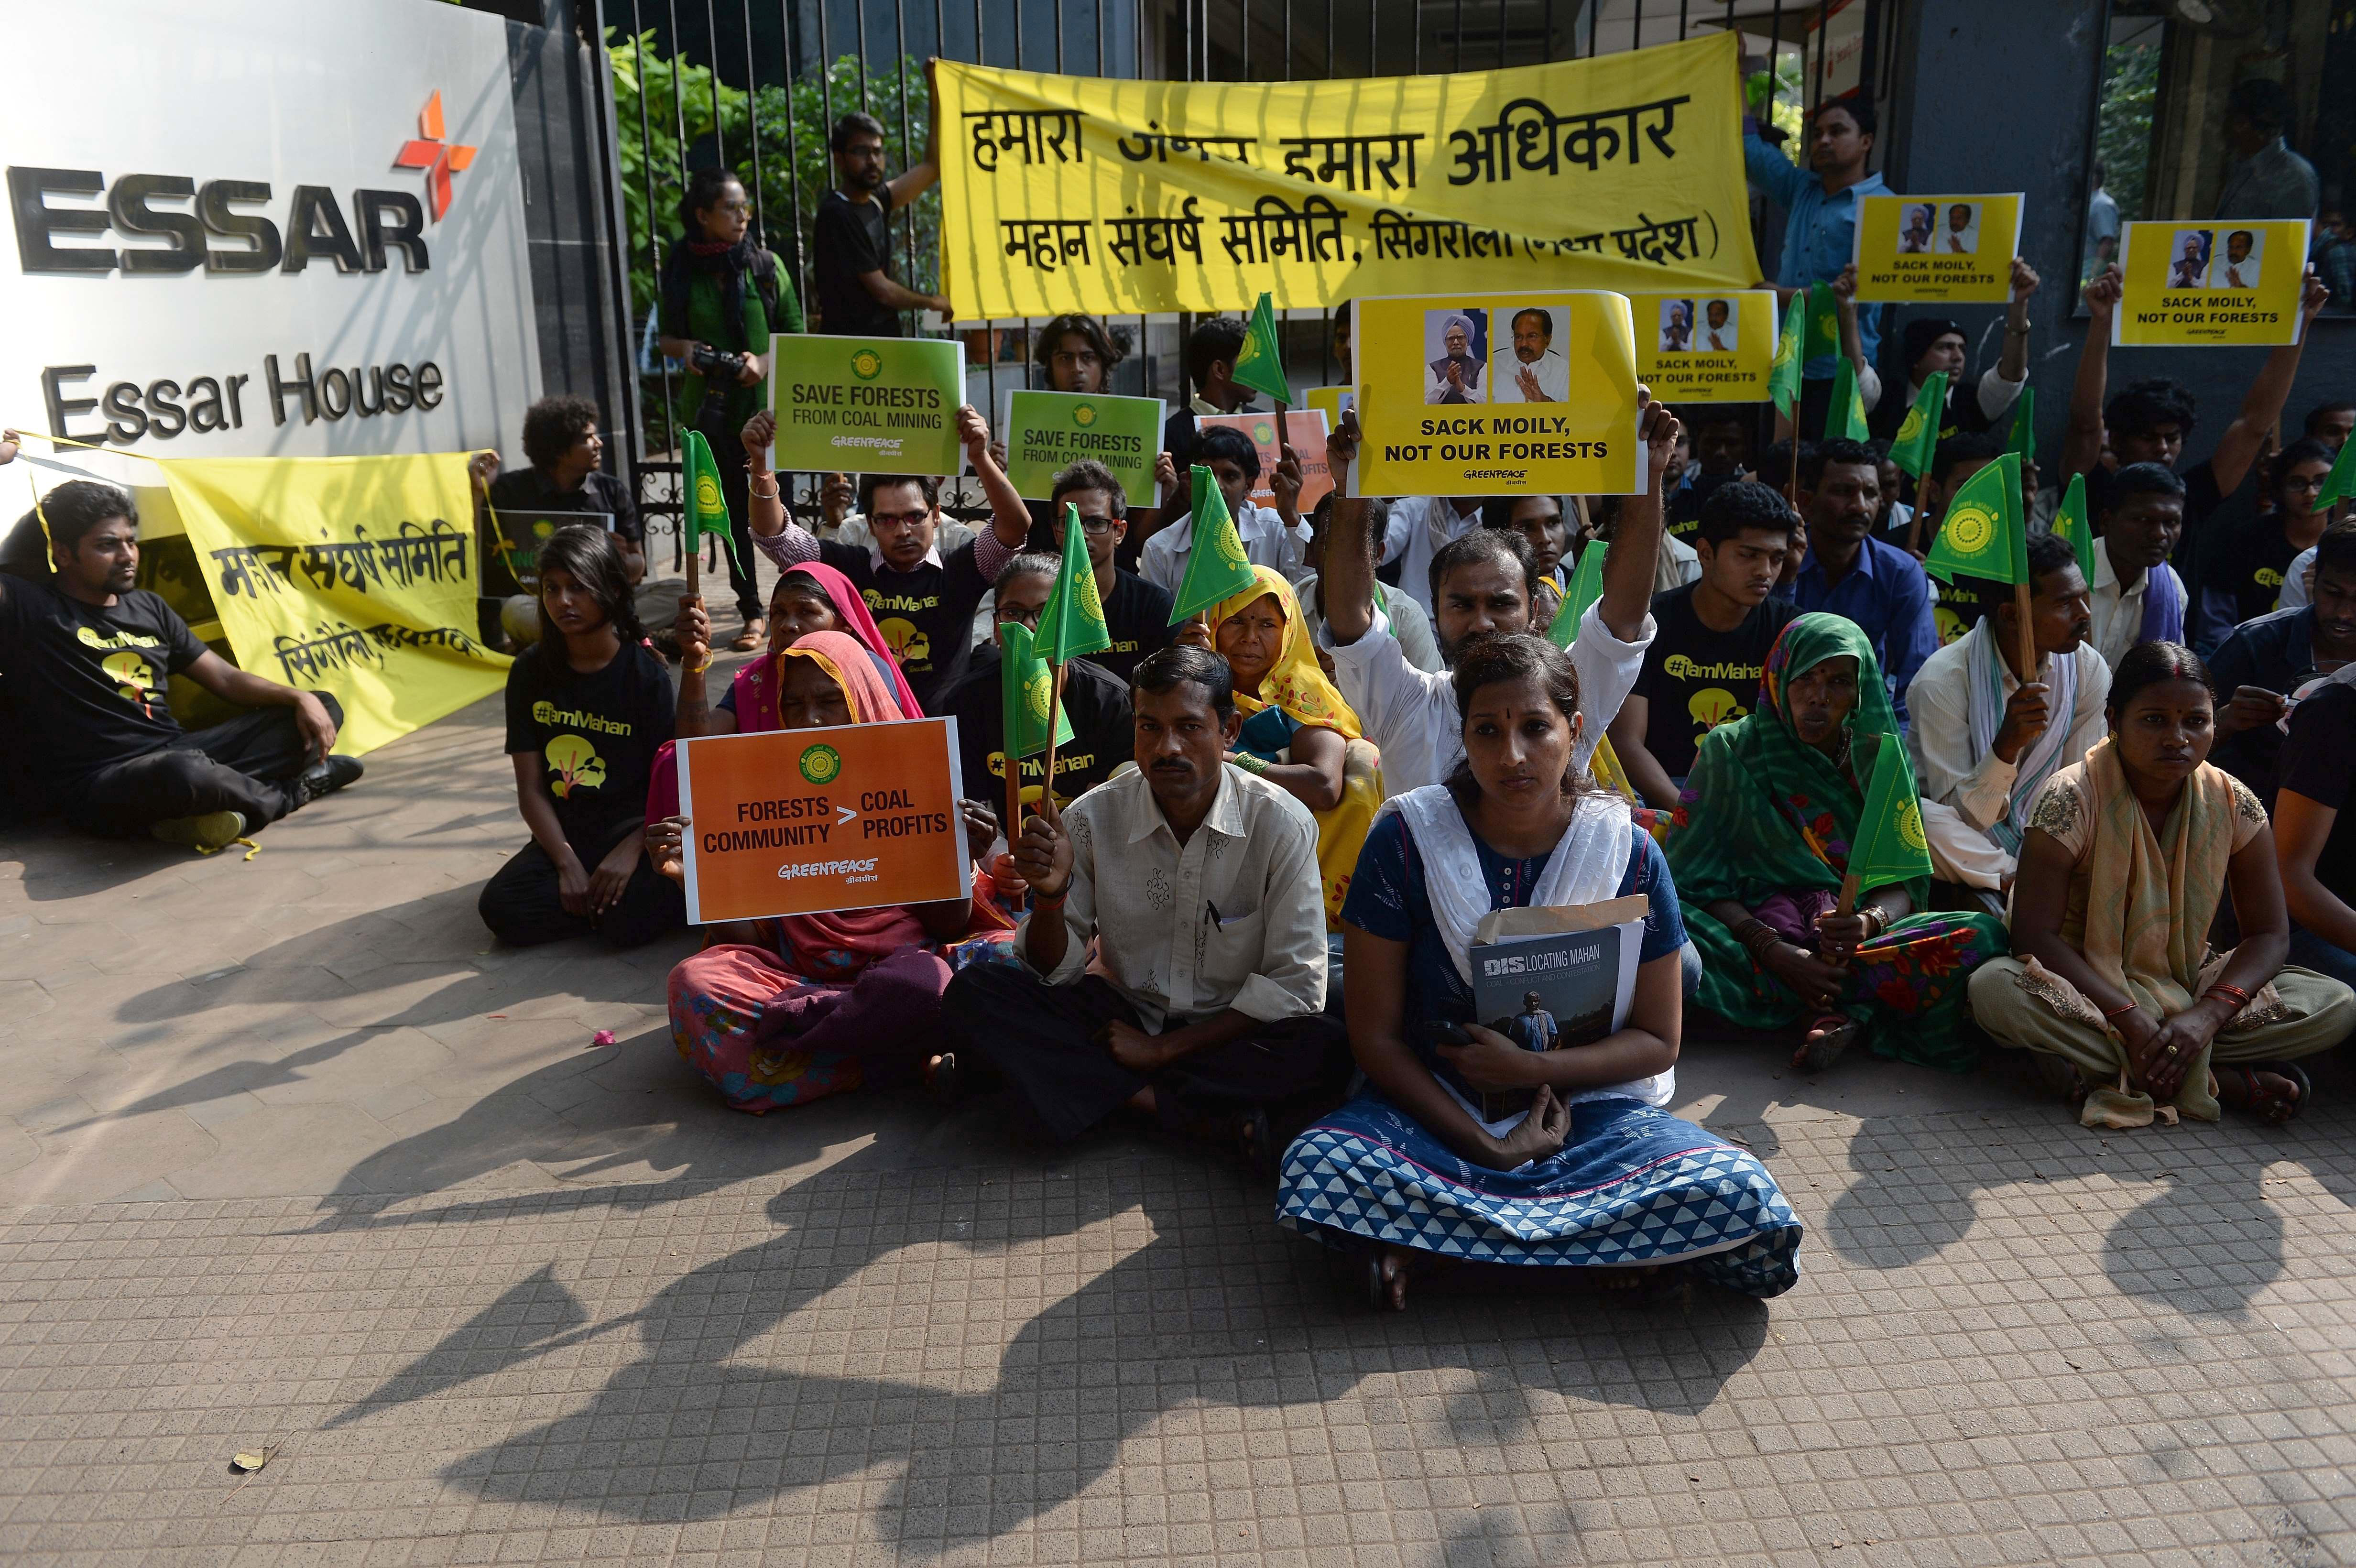 Activists from the environmental group Greenpeace and local farmers from Madhya Pradesh state sit outside the headquarters of India's Essar Group during a protest in Mumbai on Jan. 22, 2014